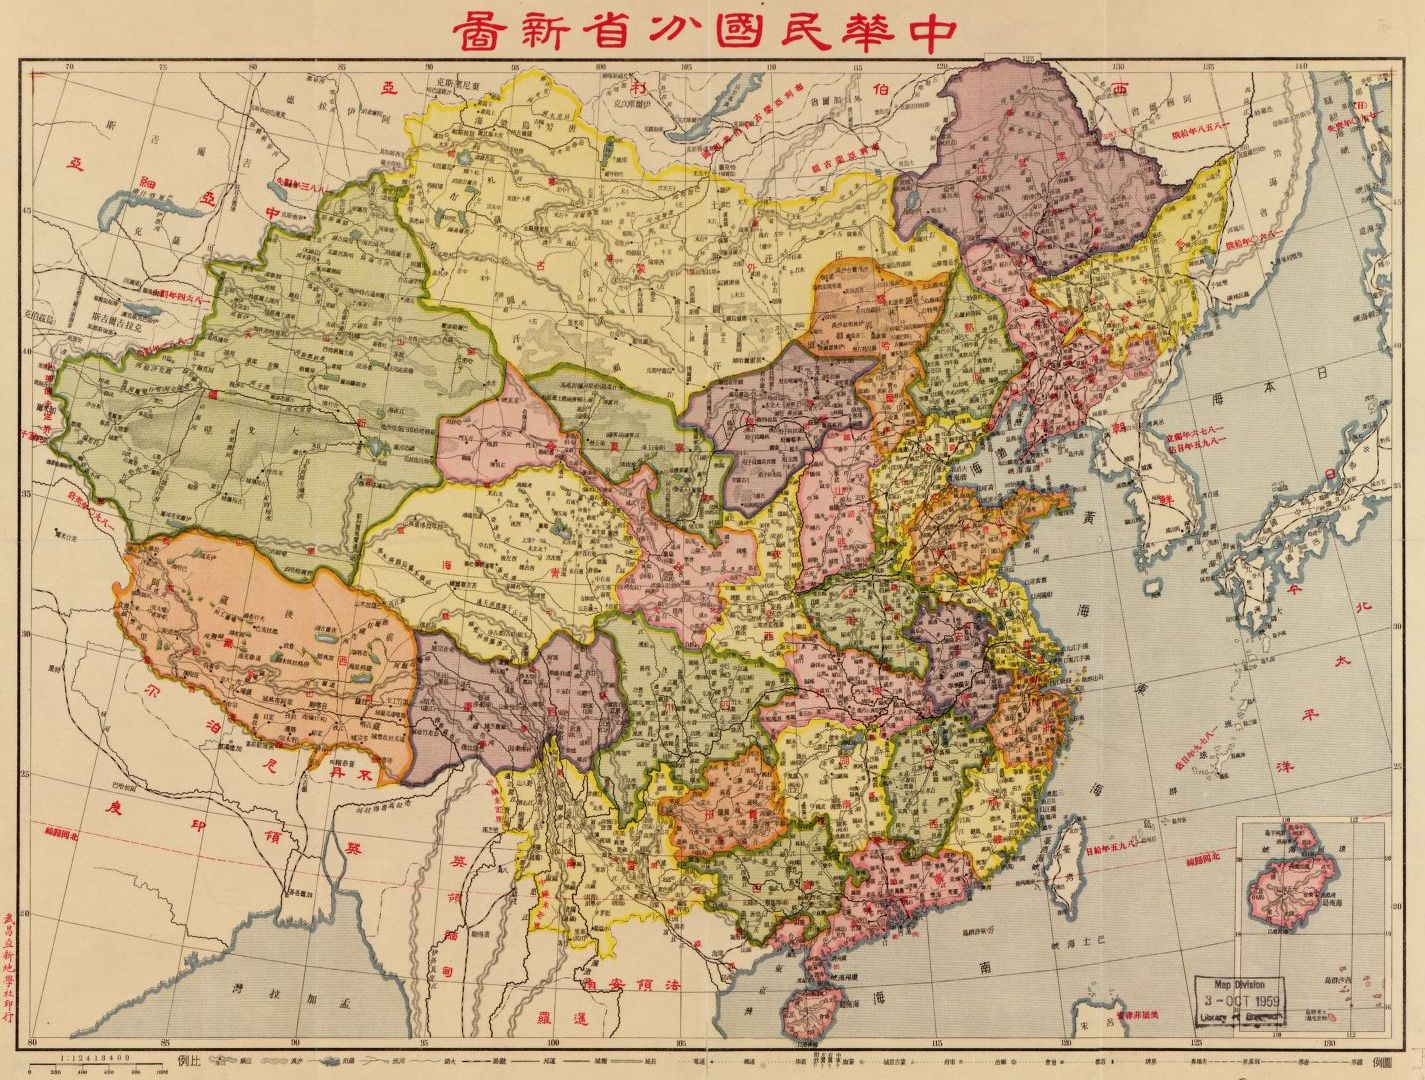 Photo of the 1933 map Zhonghua Min Guo Fen Sheng Xin Tu